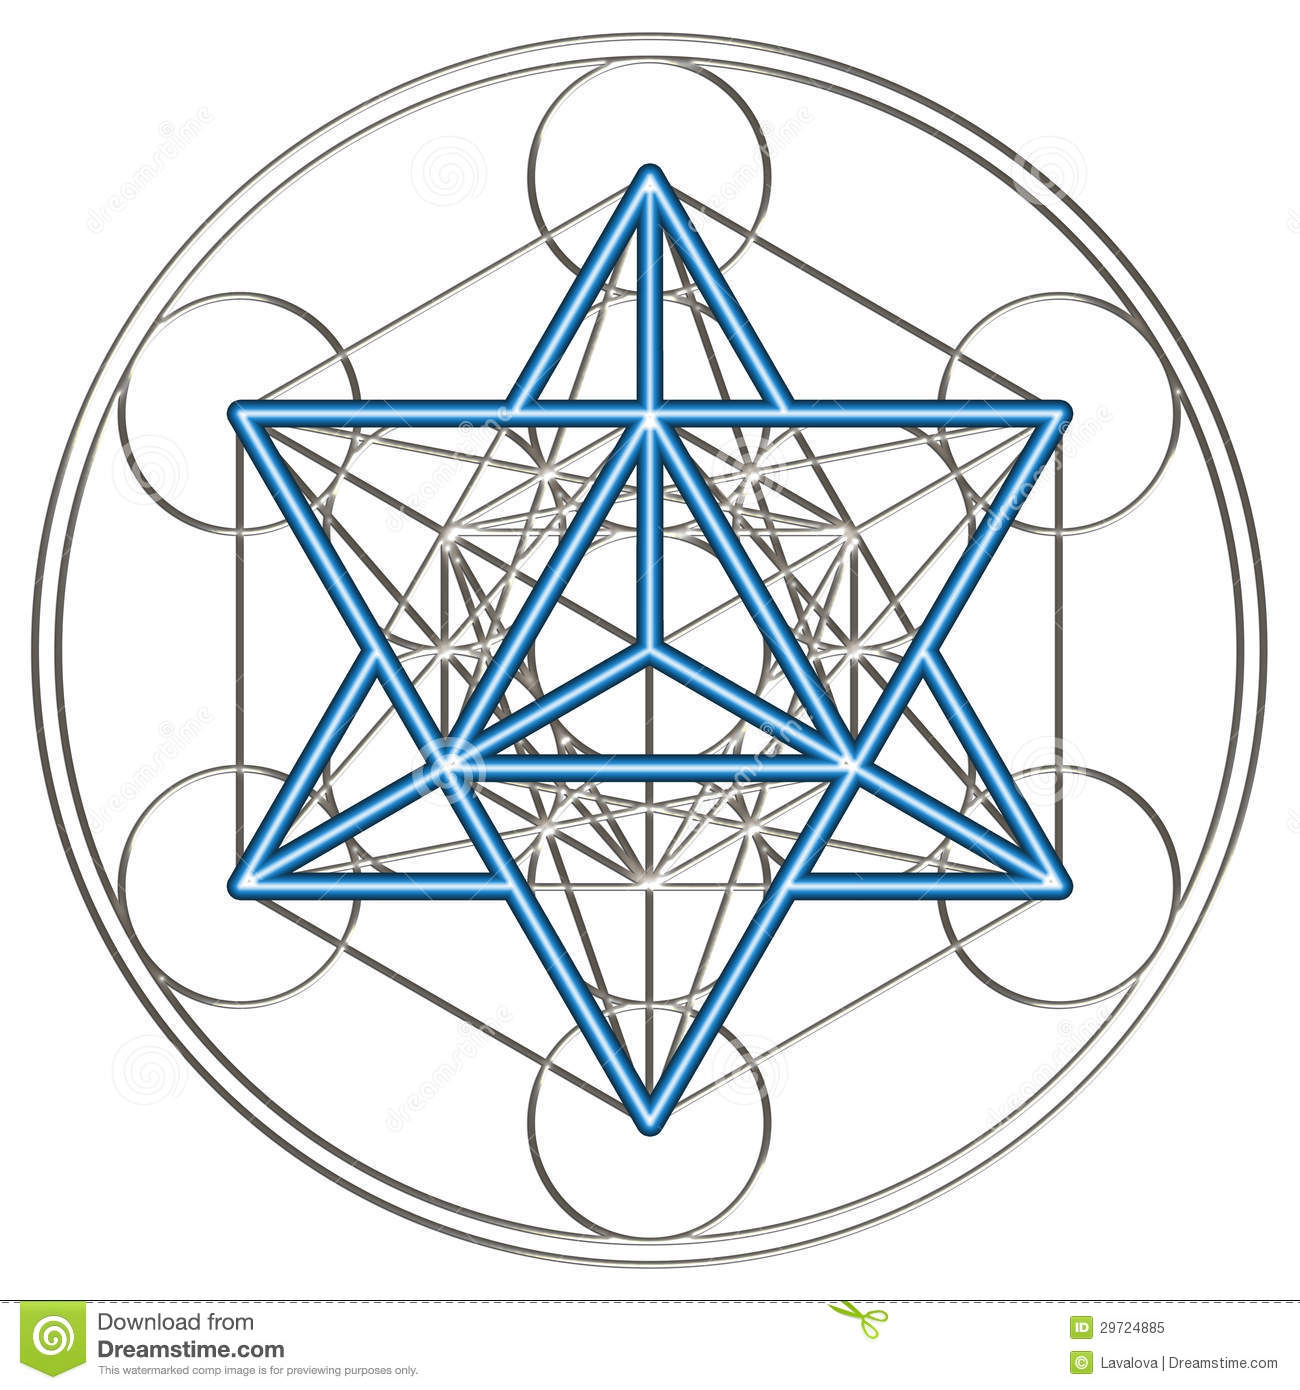 Merkaba stock illustrations 308 merkaba stock illustrations merkaba metatrons cube merkaba isolated on white background royalty free stock photo ccuart Images